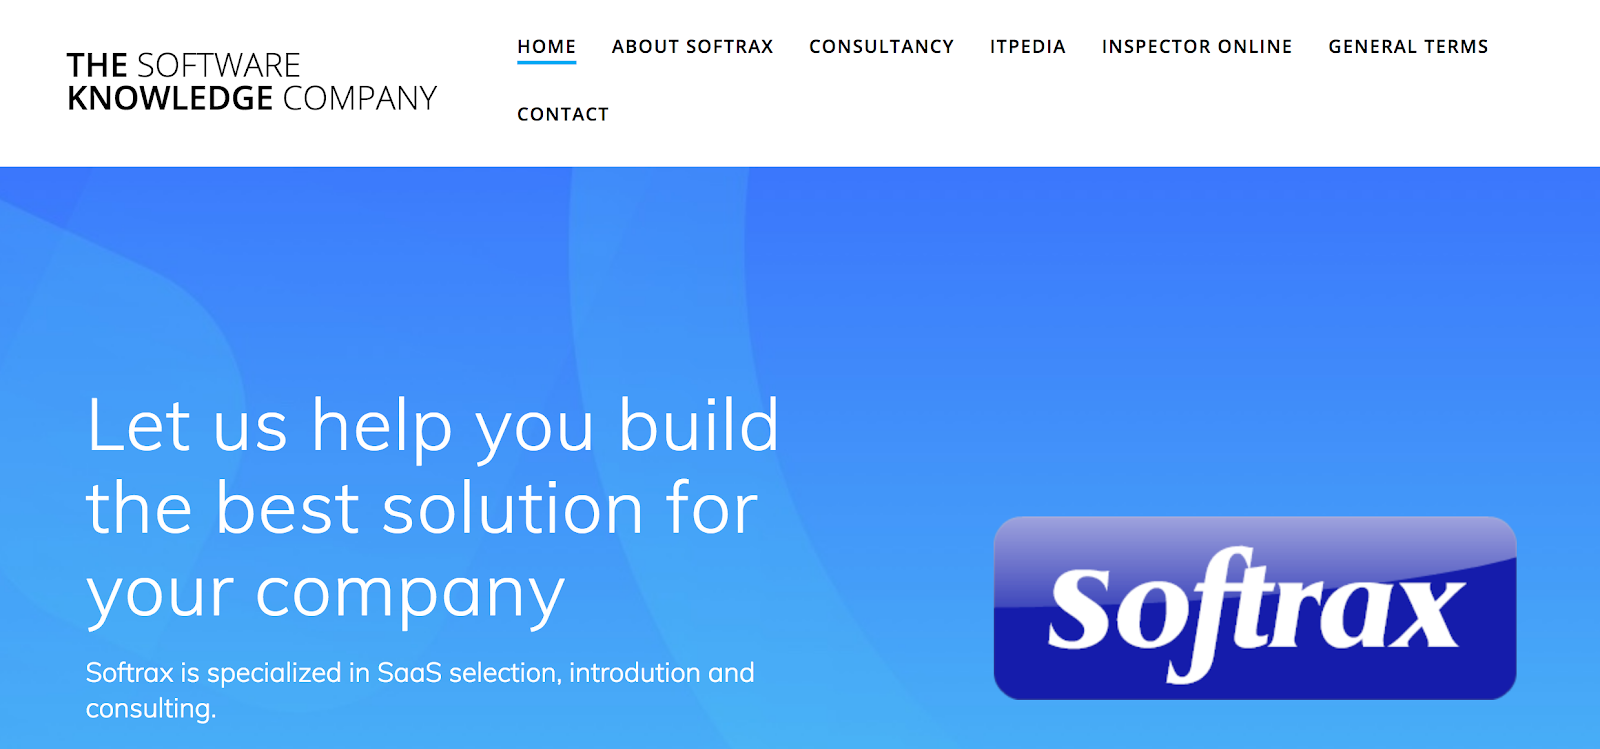 the Software Knowledge Company